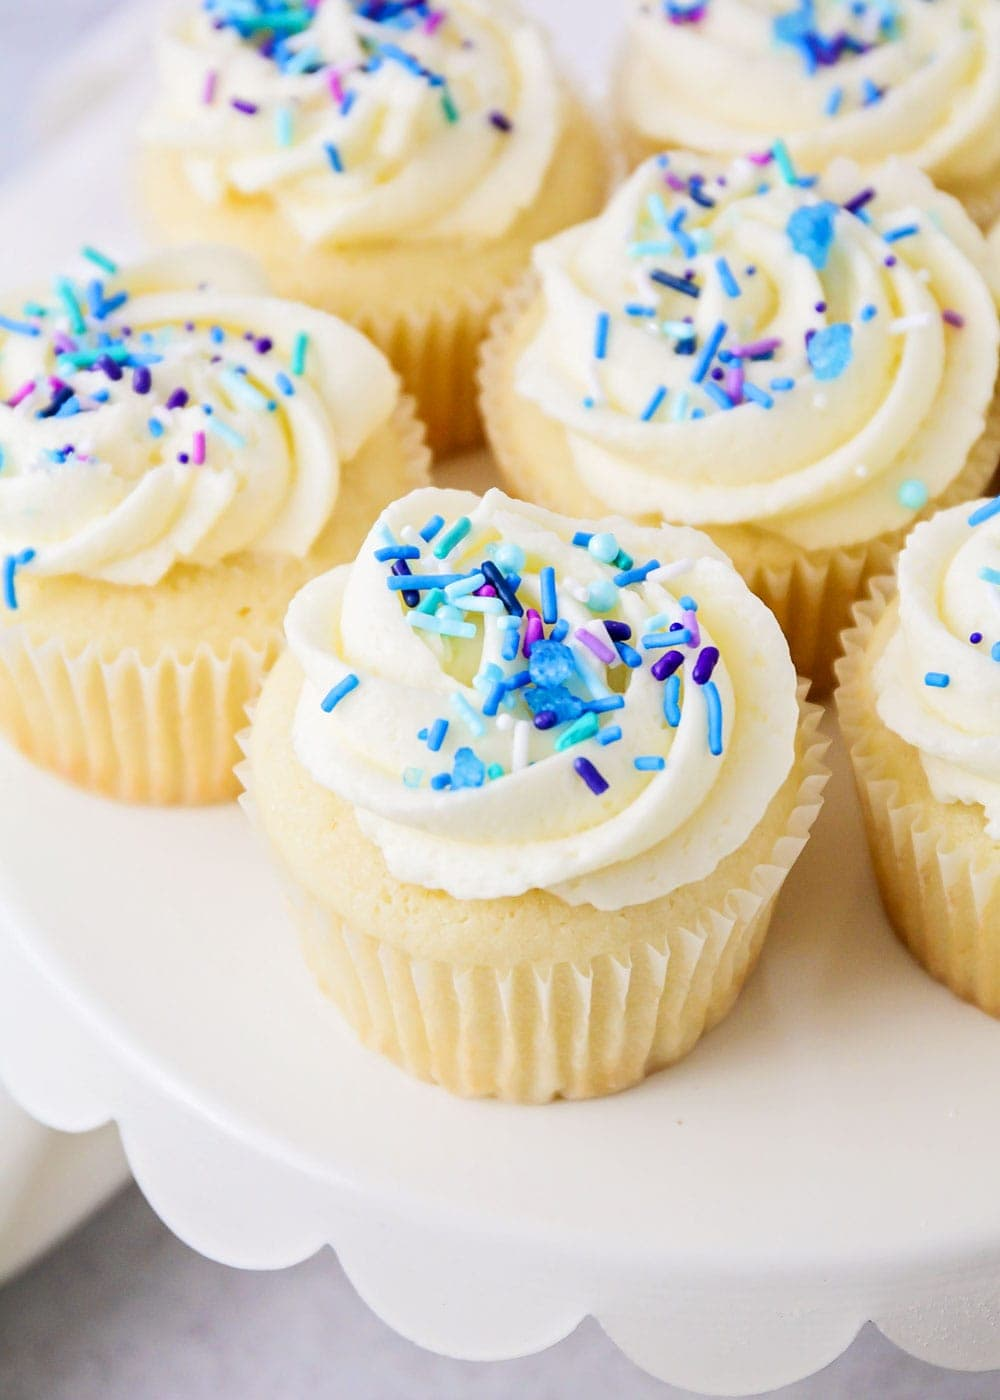 Close up of vanilla cupcakes on a cupcake stand